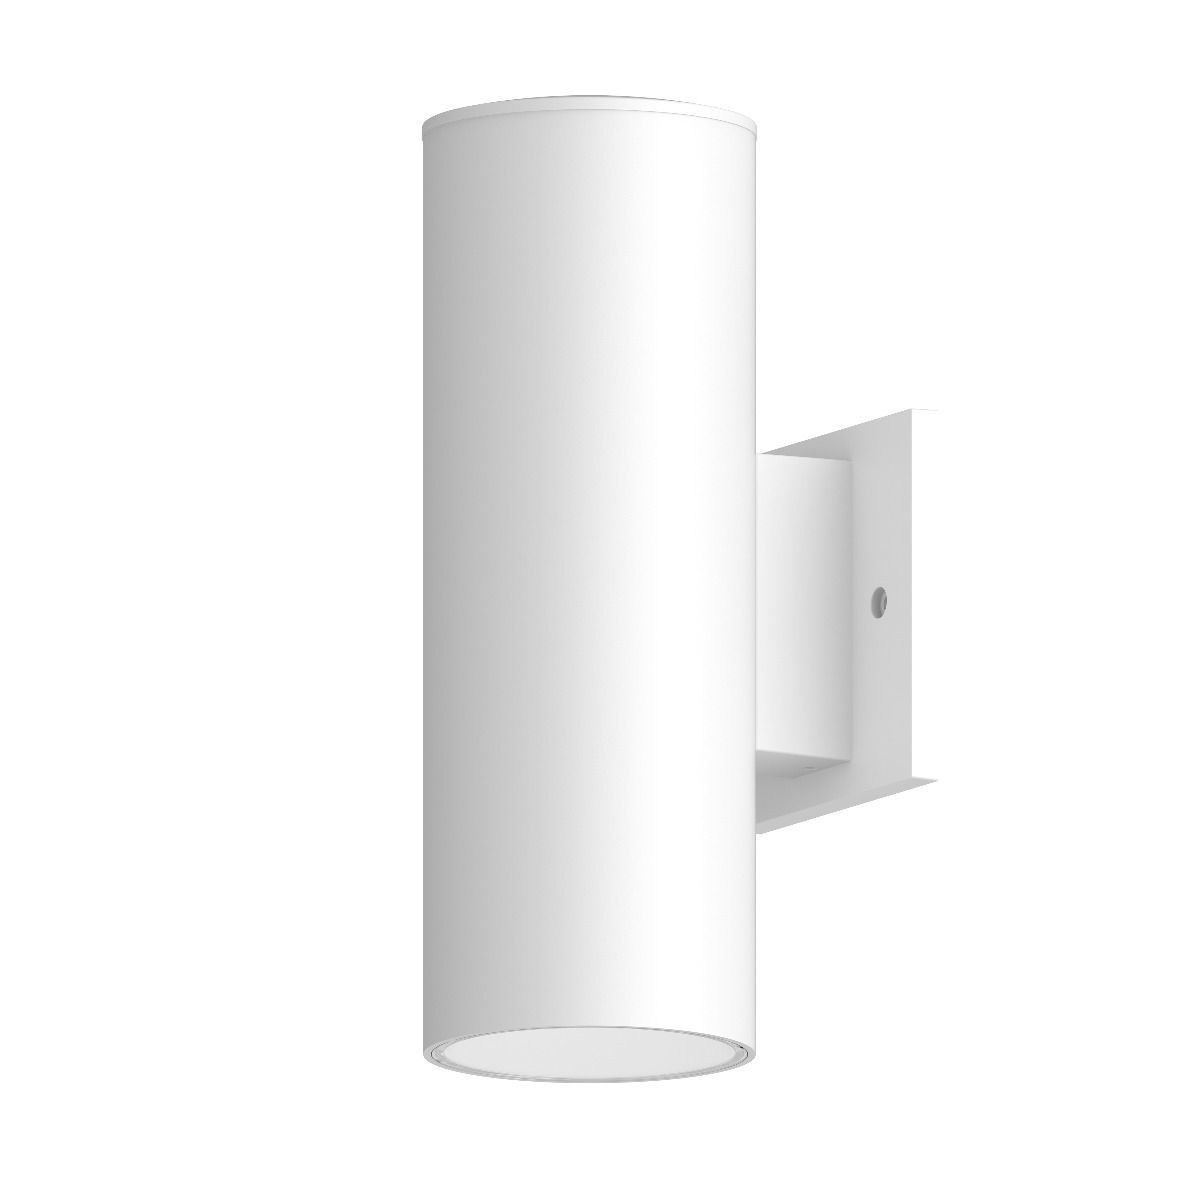 Alcon Lighting 11239 W Cilindro Iii Architectural Led Large Modern Cylinder Wall Mount Direct Light Fixture Alconlighting Com